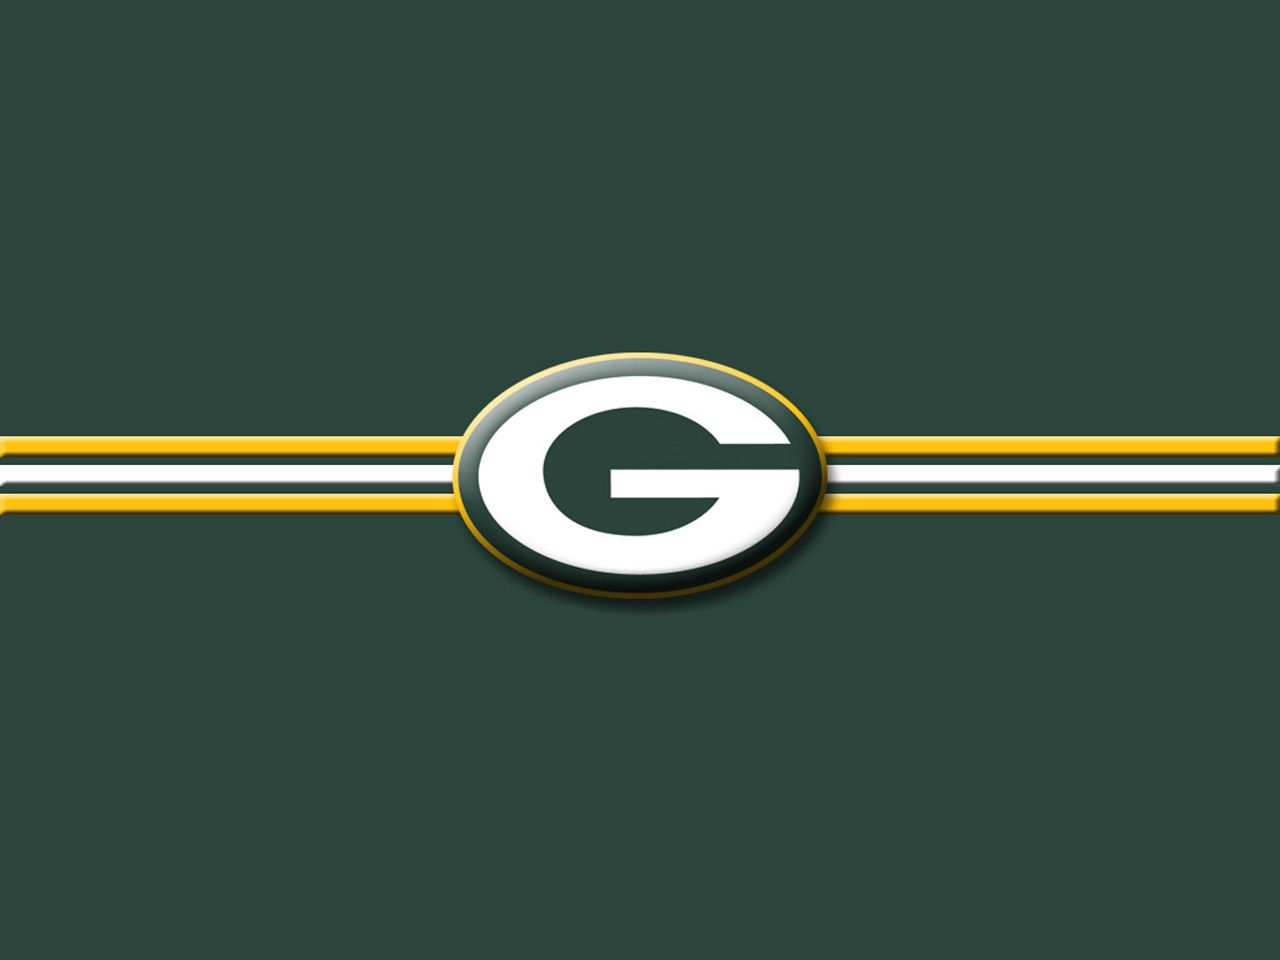 Coolness Green Bay Packers Team Green Bay Green Bay Packers